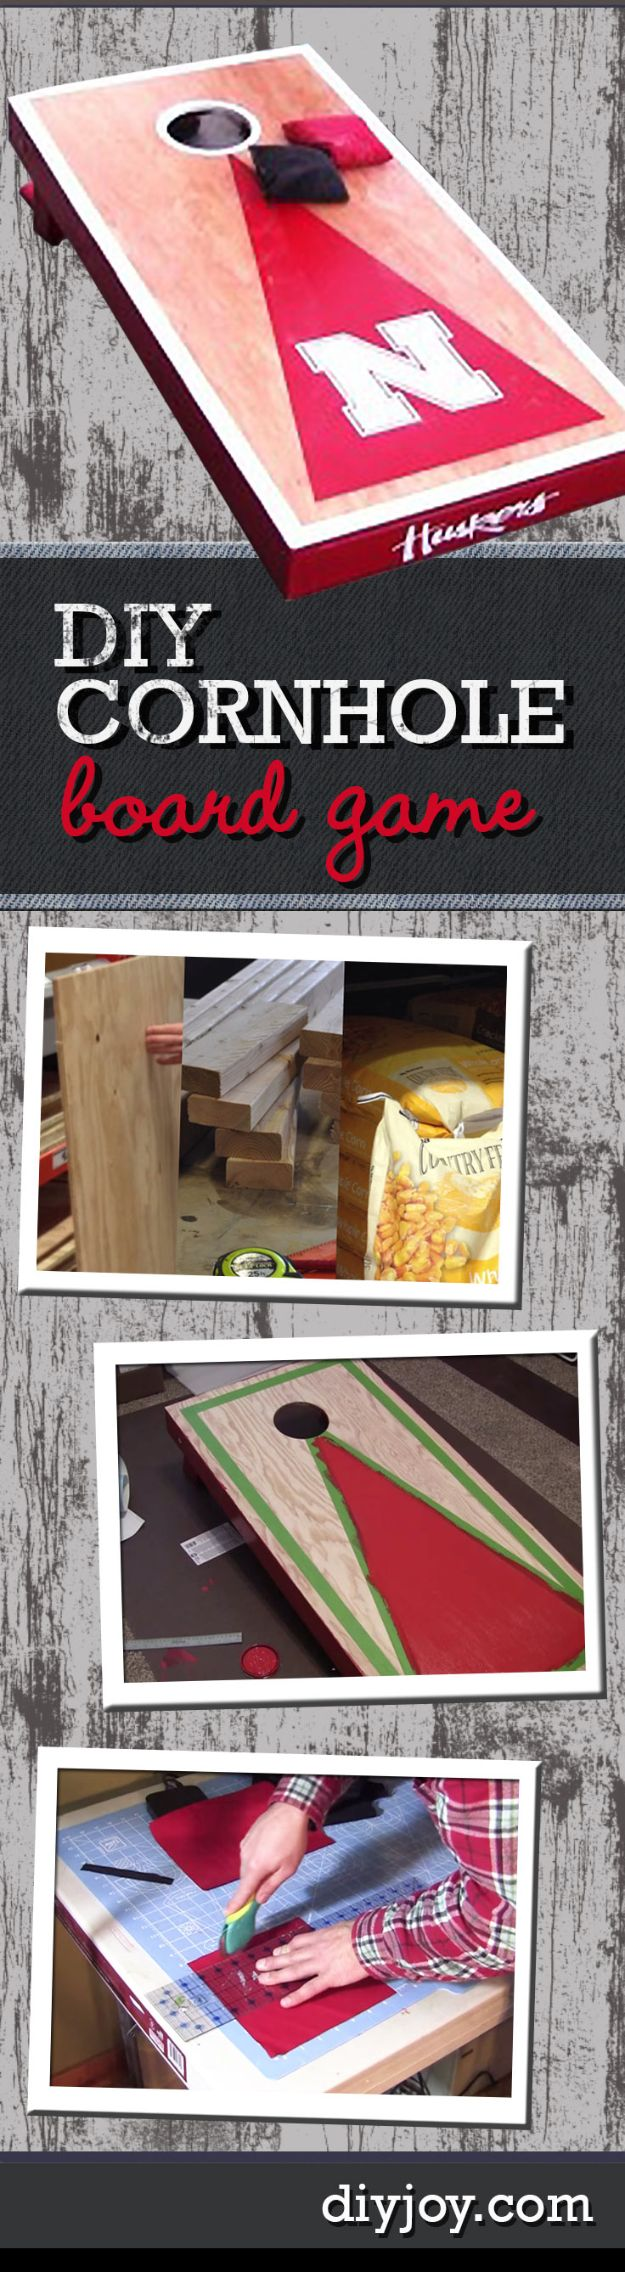 DIY Gifts for Him - Cornhole Boards - Homemade Gift Ideas for Guys - DYI Christmas Gift for Dad, Boyfriend, Husband Brother - Easy and Cheap Handmade Presents Birthday https://diyjoy.com/diy-gifts-for-him